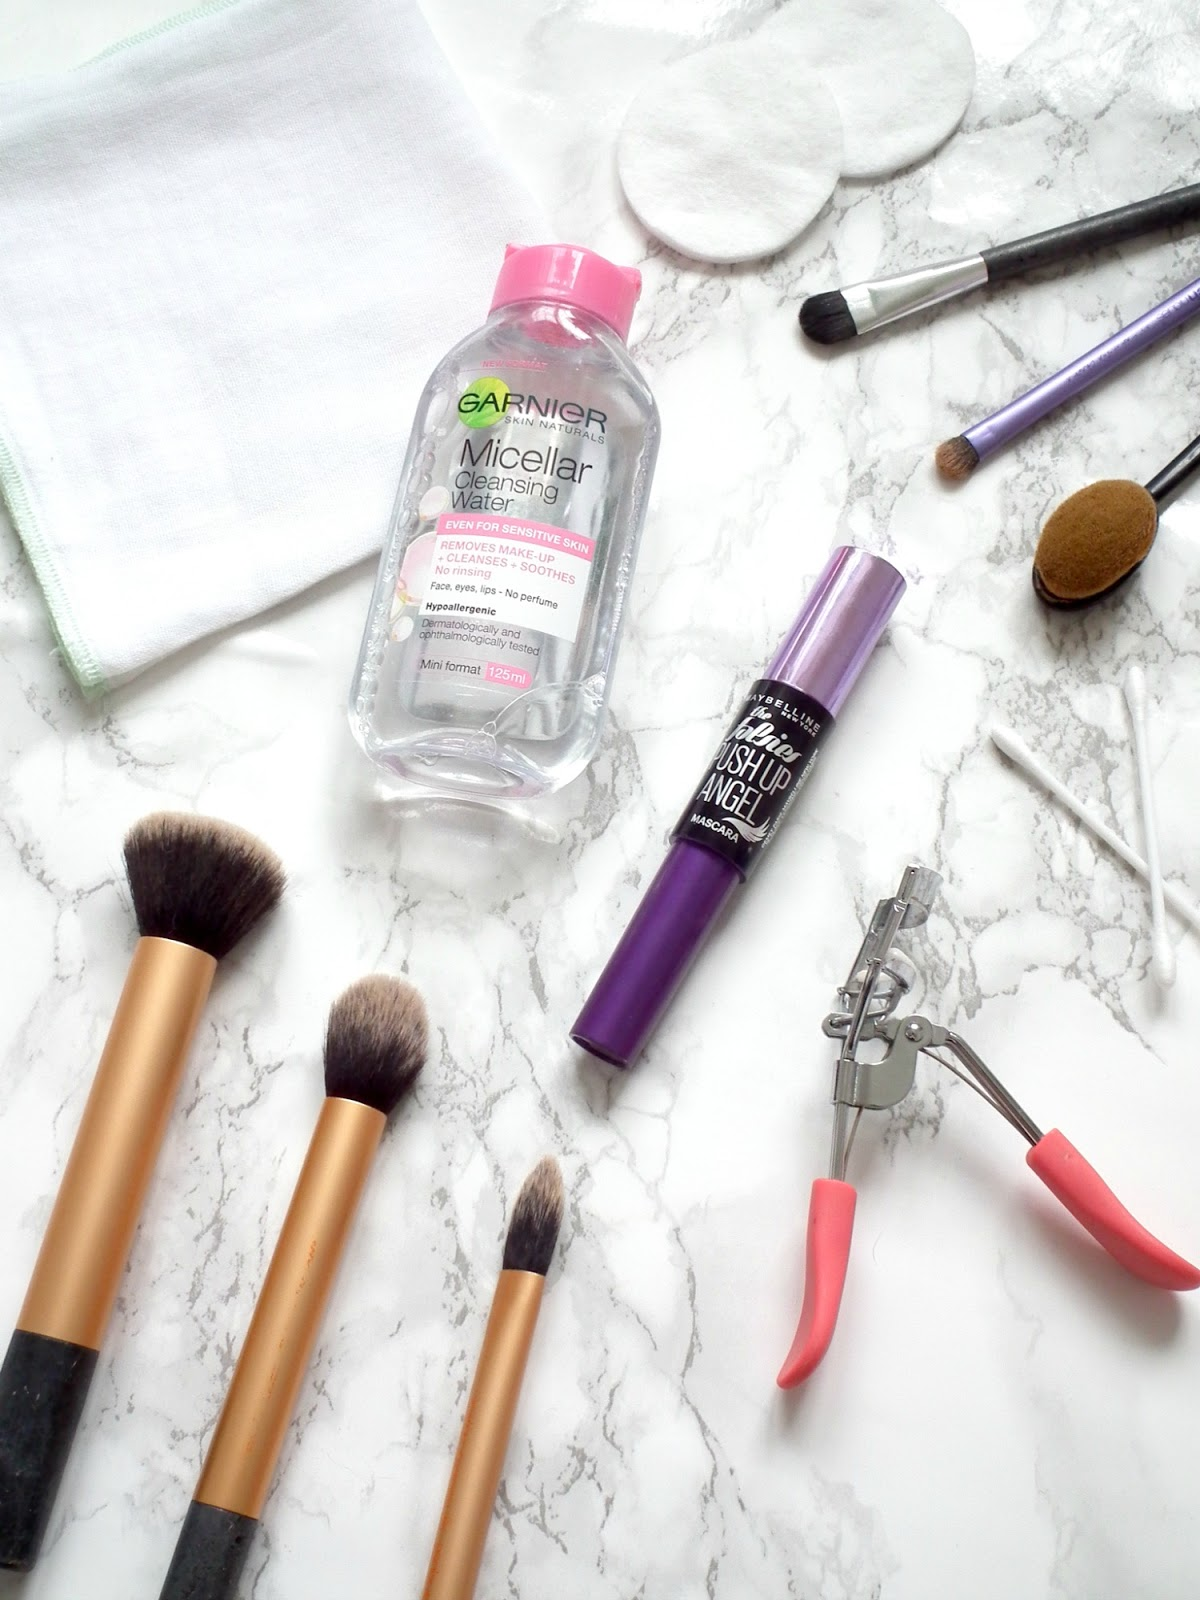 5 Things That Make My Makeup Routine Easier